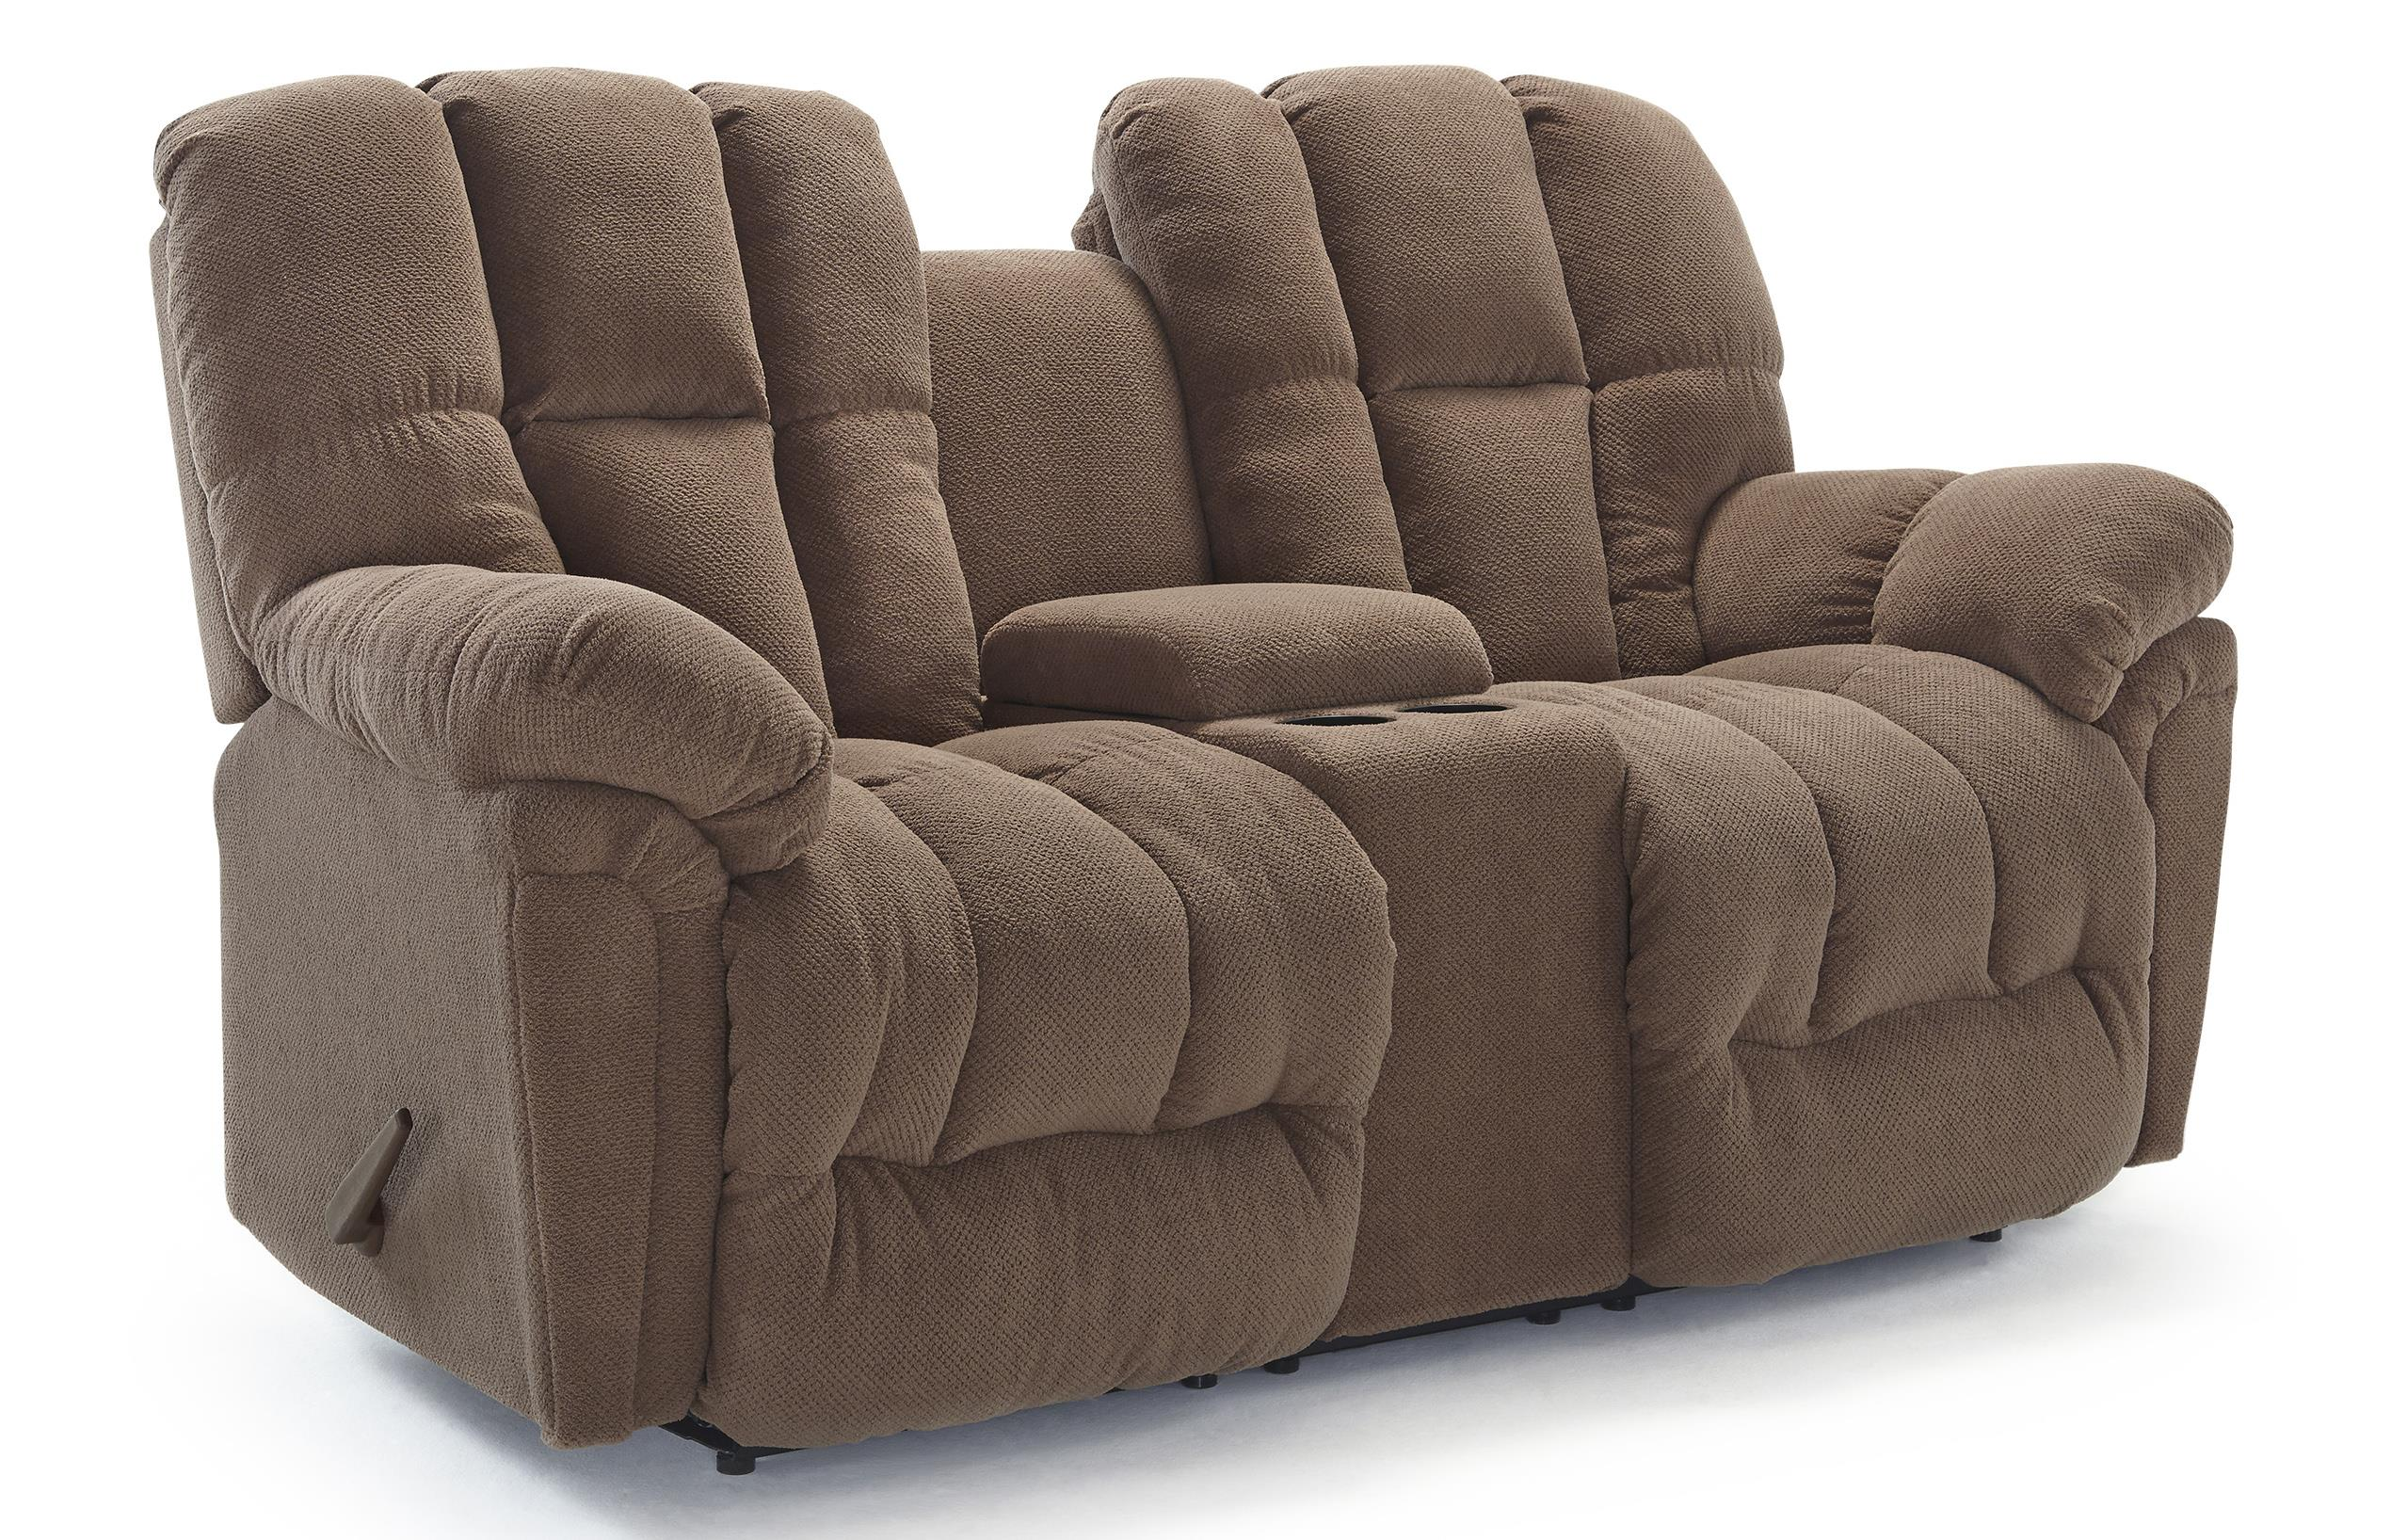 Lucas plush power rocking reclining loveseat with drink console by best home furnishings wolf Loveseats with console